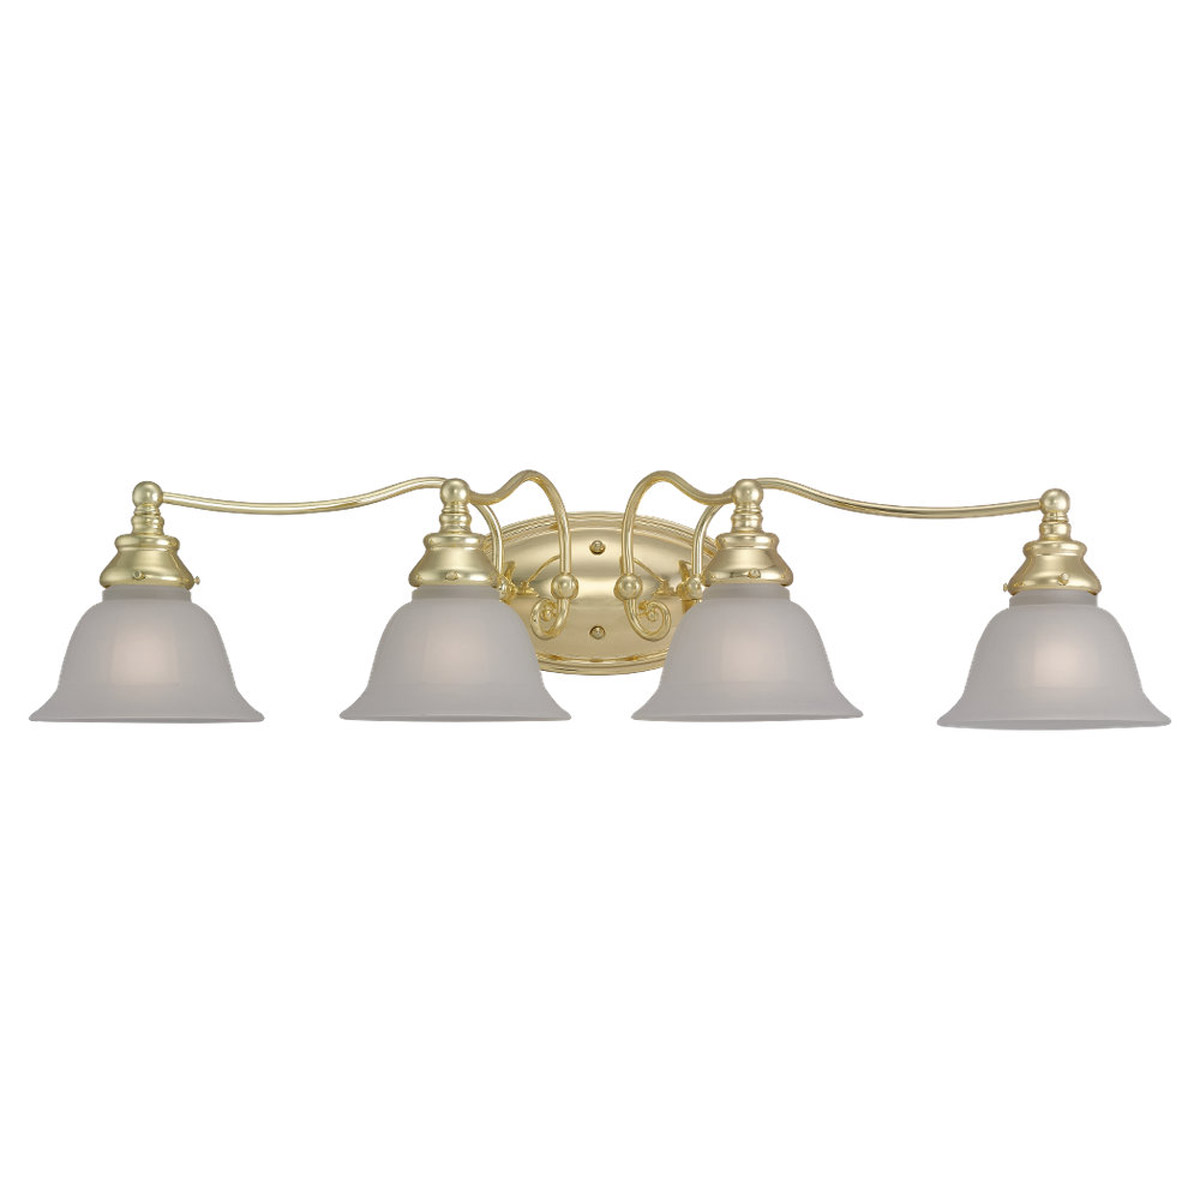 Sea Gull Lighting Canterbury 4 Light Bath Vanity in Polished Brass 44653-02